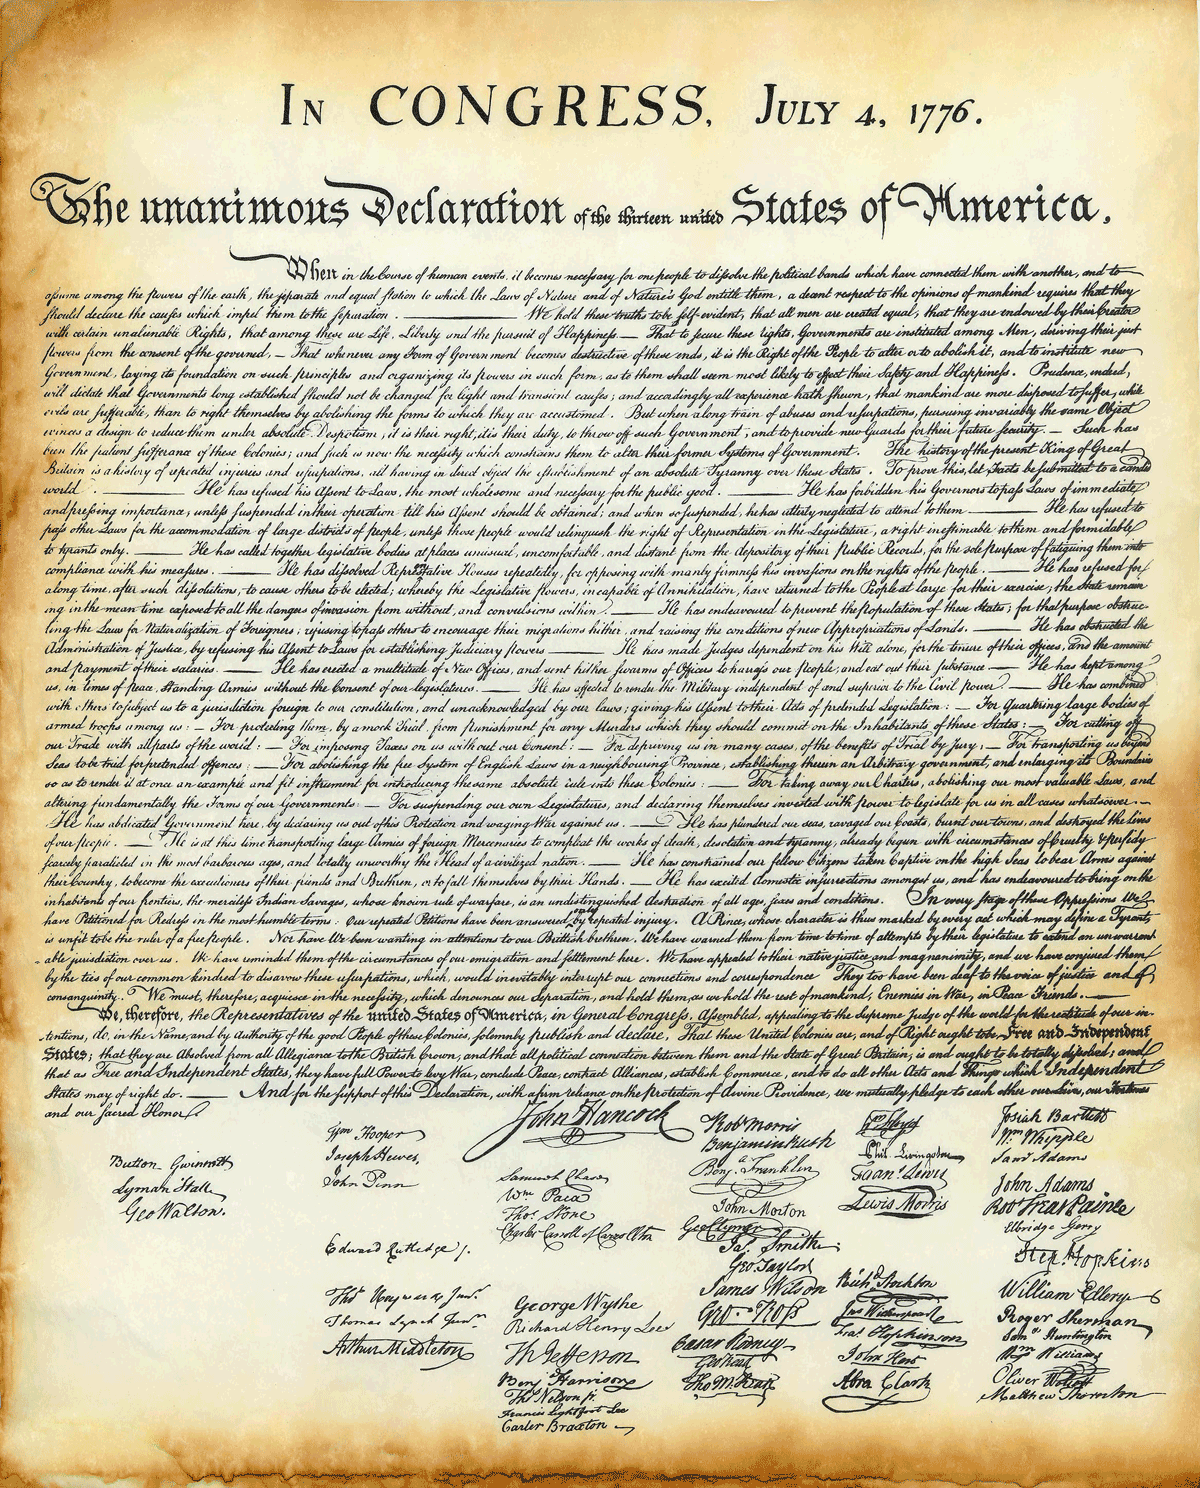 Our Founding Document